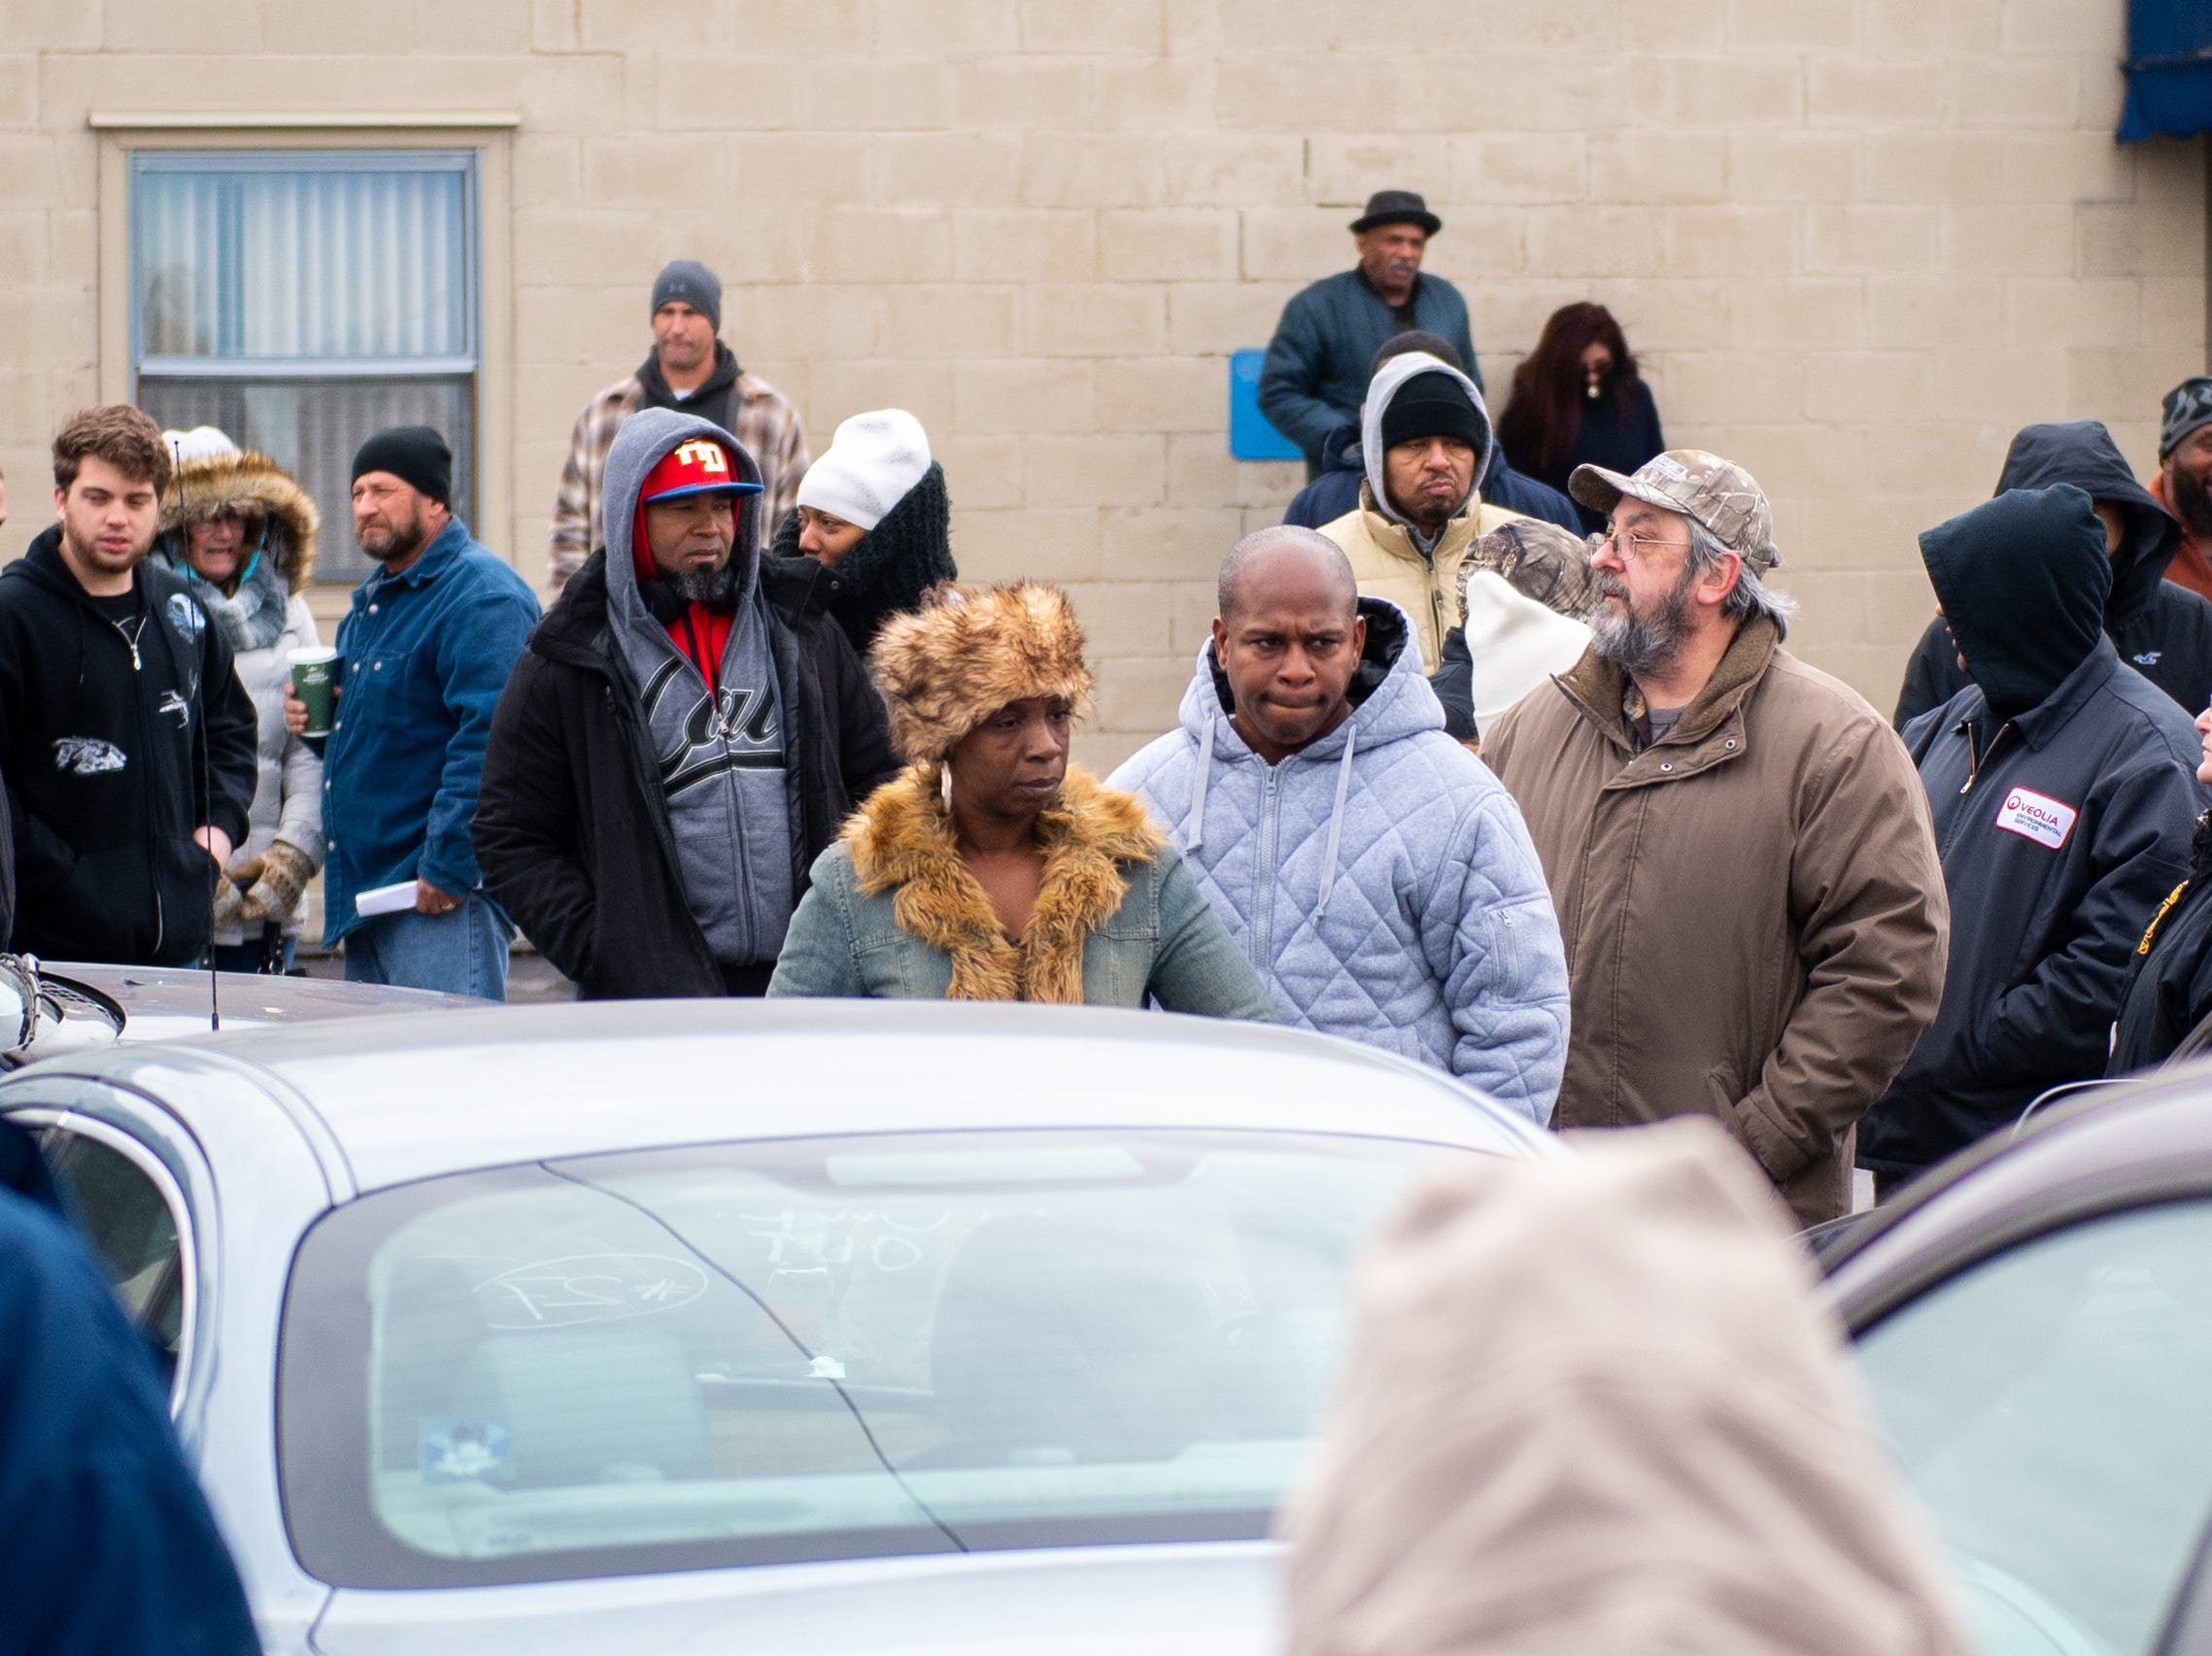 Bidders braved the frigid, below freezing, temperatures to try and get a car during the York County Drug Task Force auction on Black Friday, November 23, 2018.